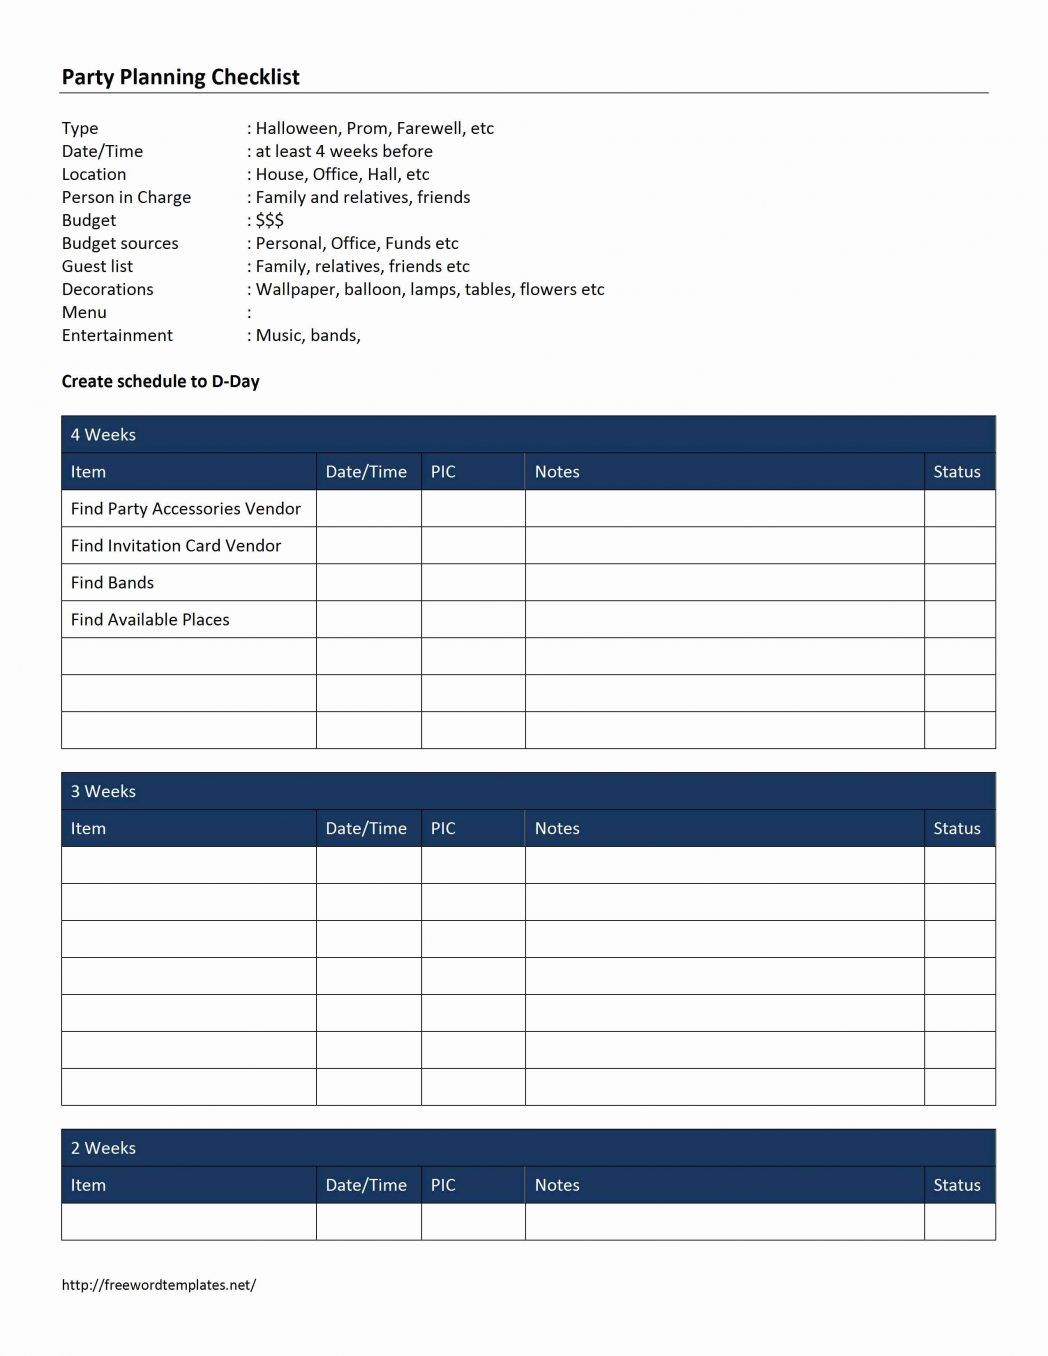 Free Ms Word Project Management Templates Excel 2007 With Checklist Throughout Project Management Templates In Word